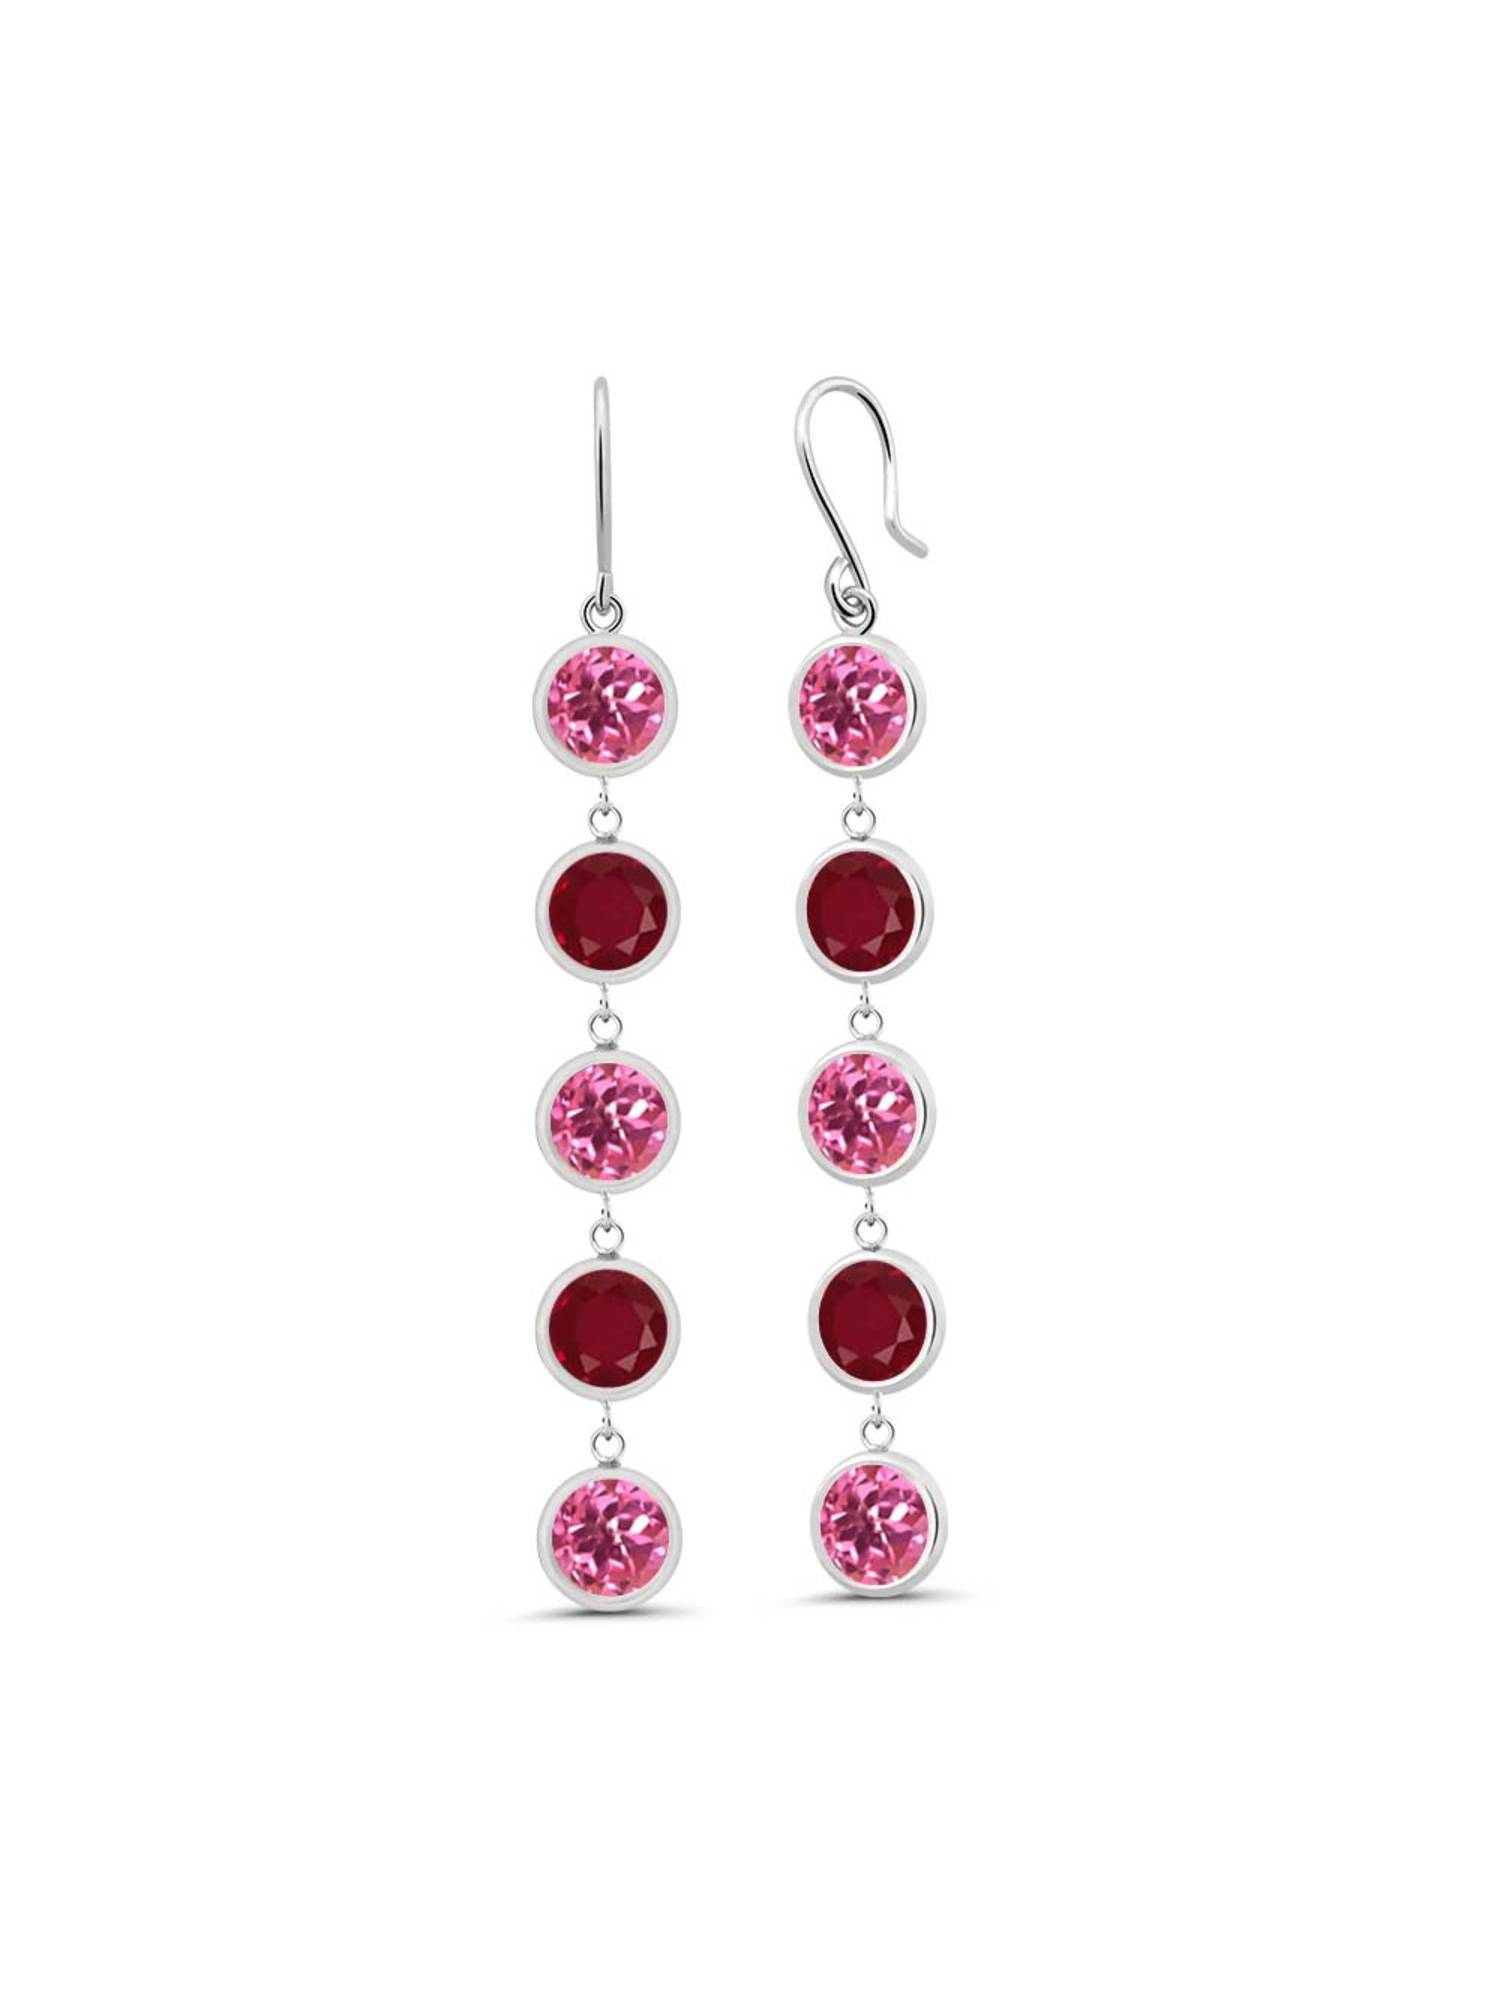 5.00 Ct Round Pink Mystic Topaz Red Ruby 925 Sterling Silver Earrings by